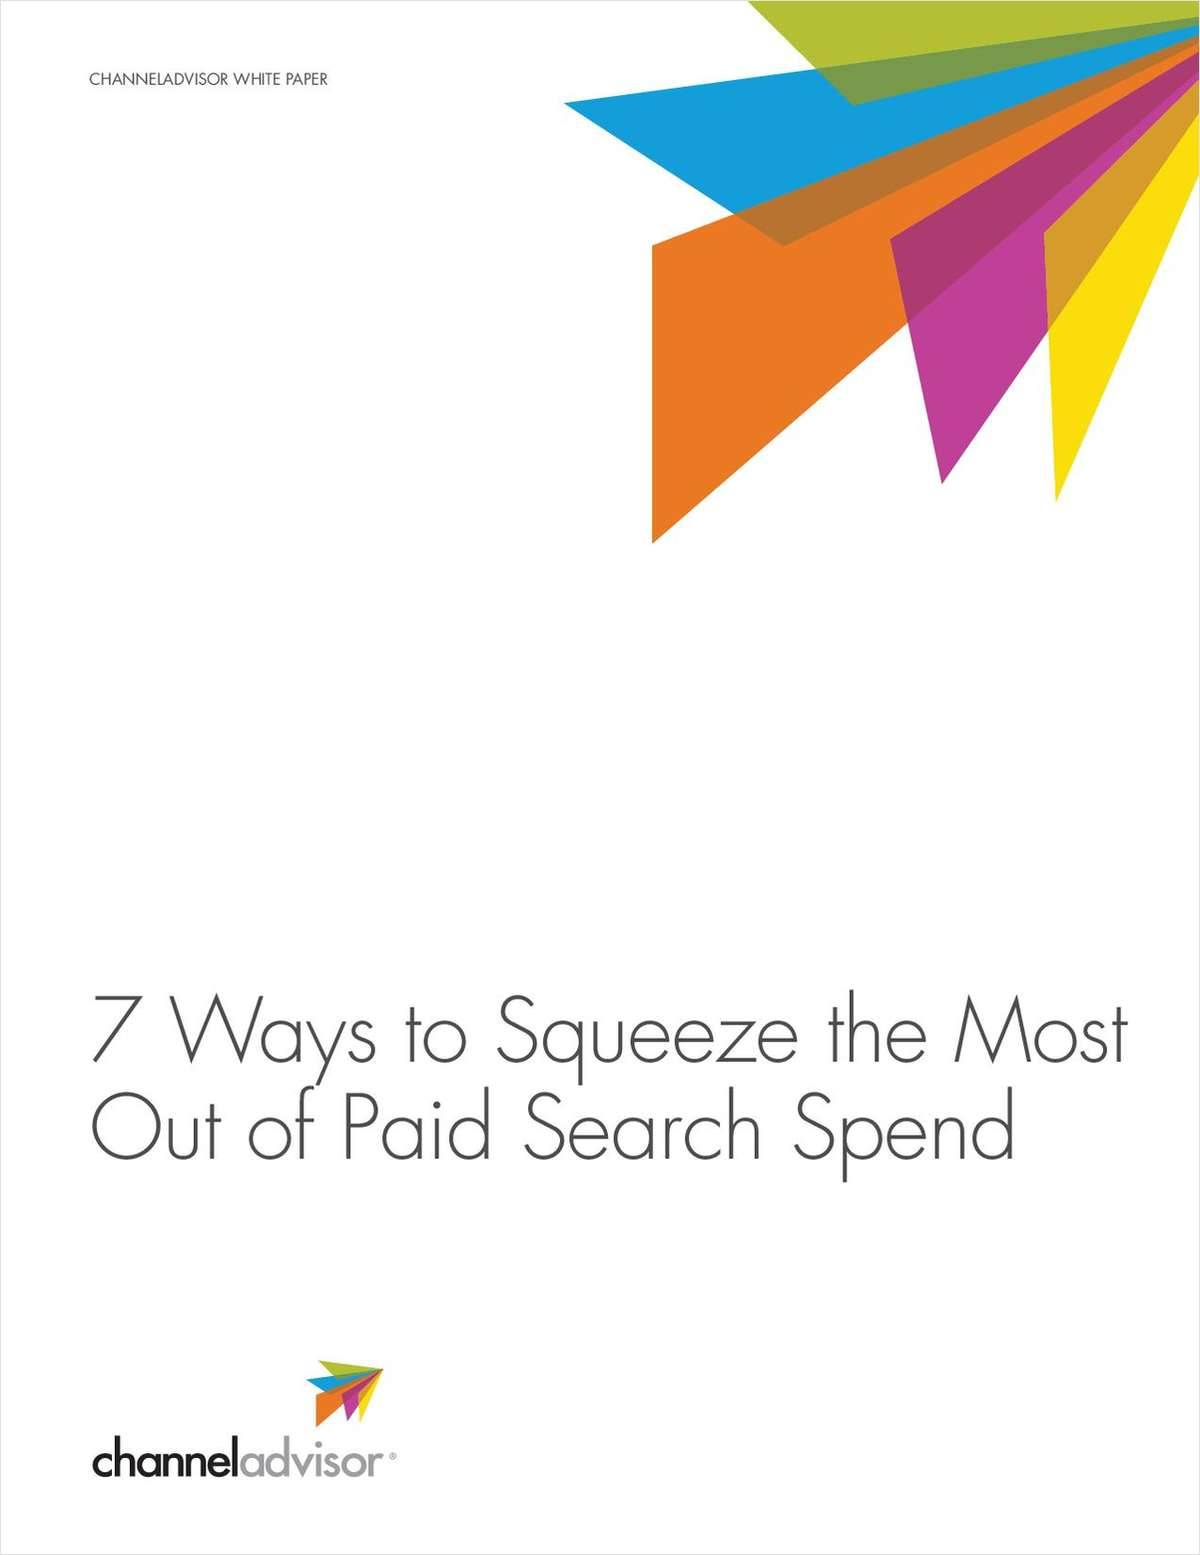 7 Ways Retailers Can Squeeze the Most Out of Paid Search Spend